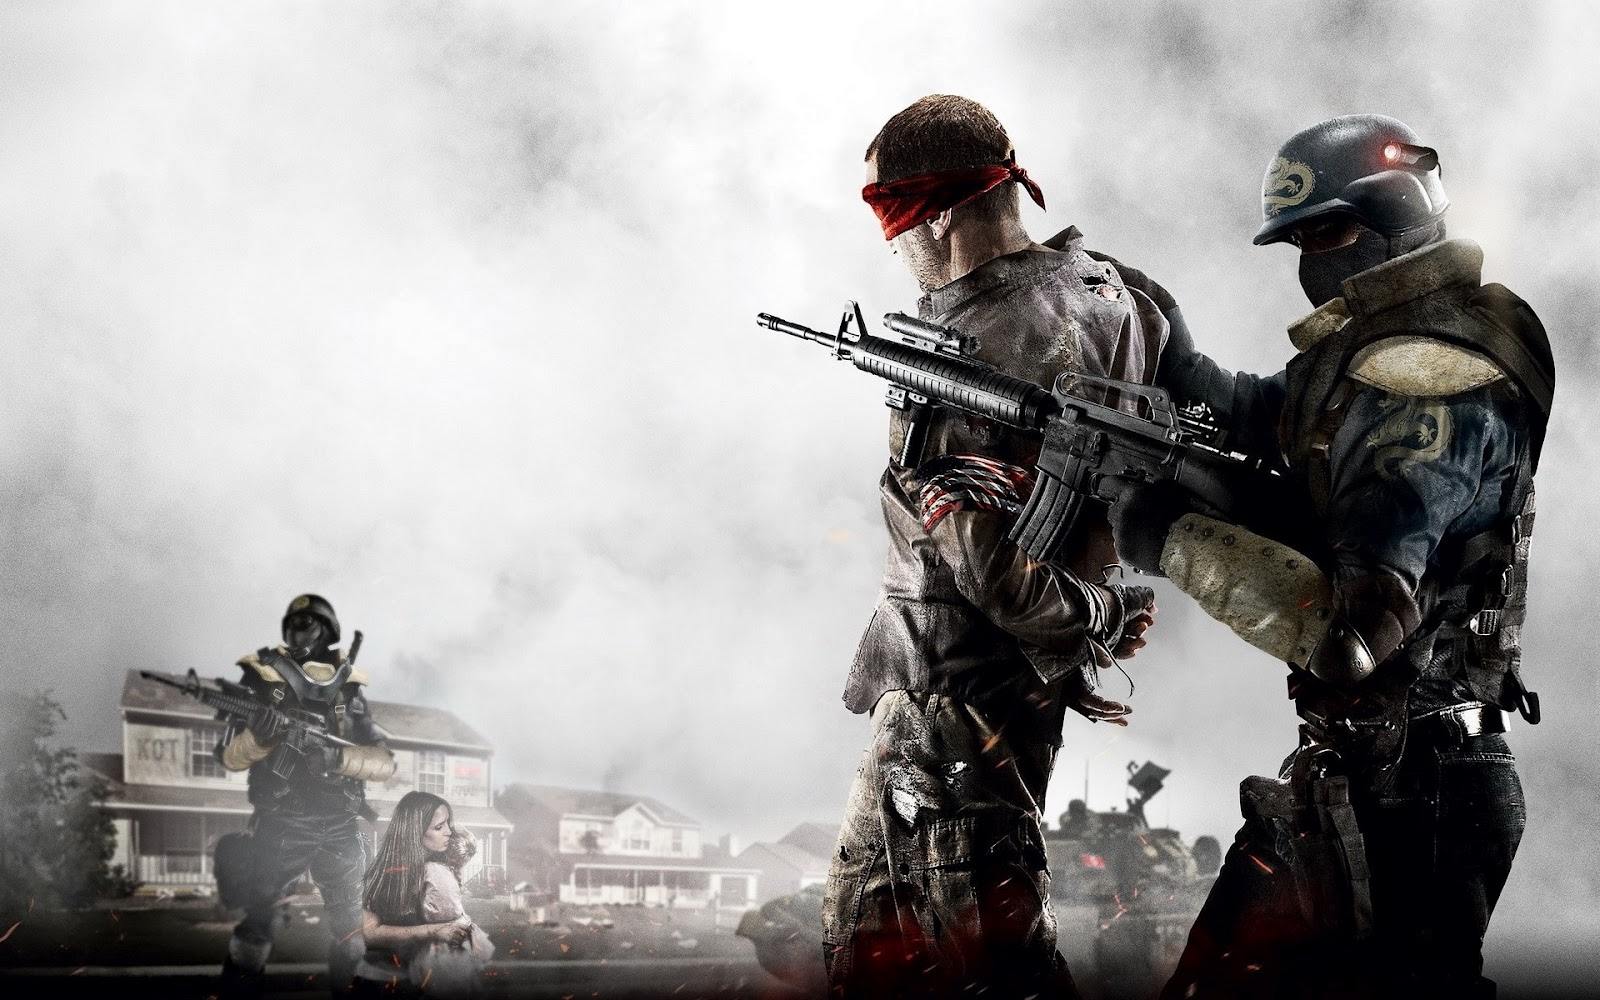 awesome graphics shooter hd wallpaper hd video game desktop wallpapers 1600x1000